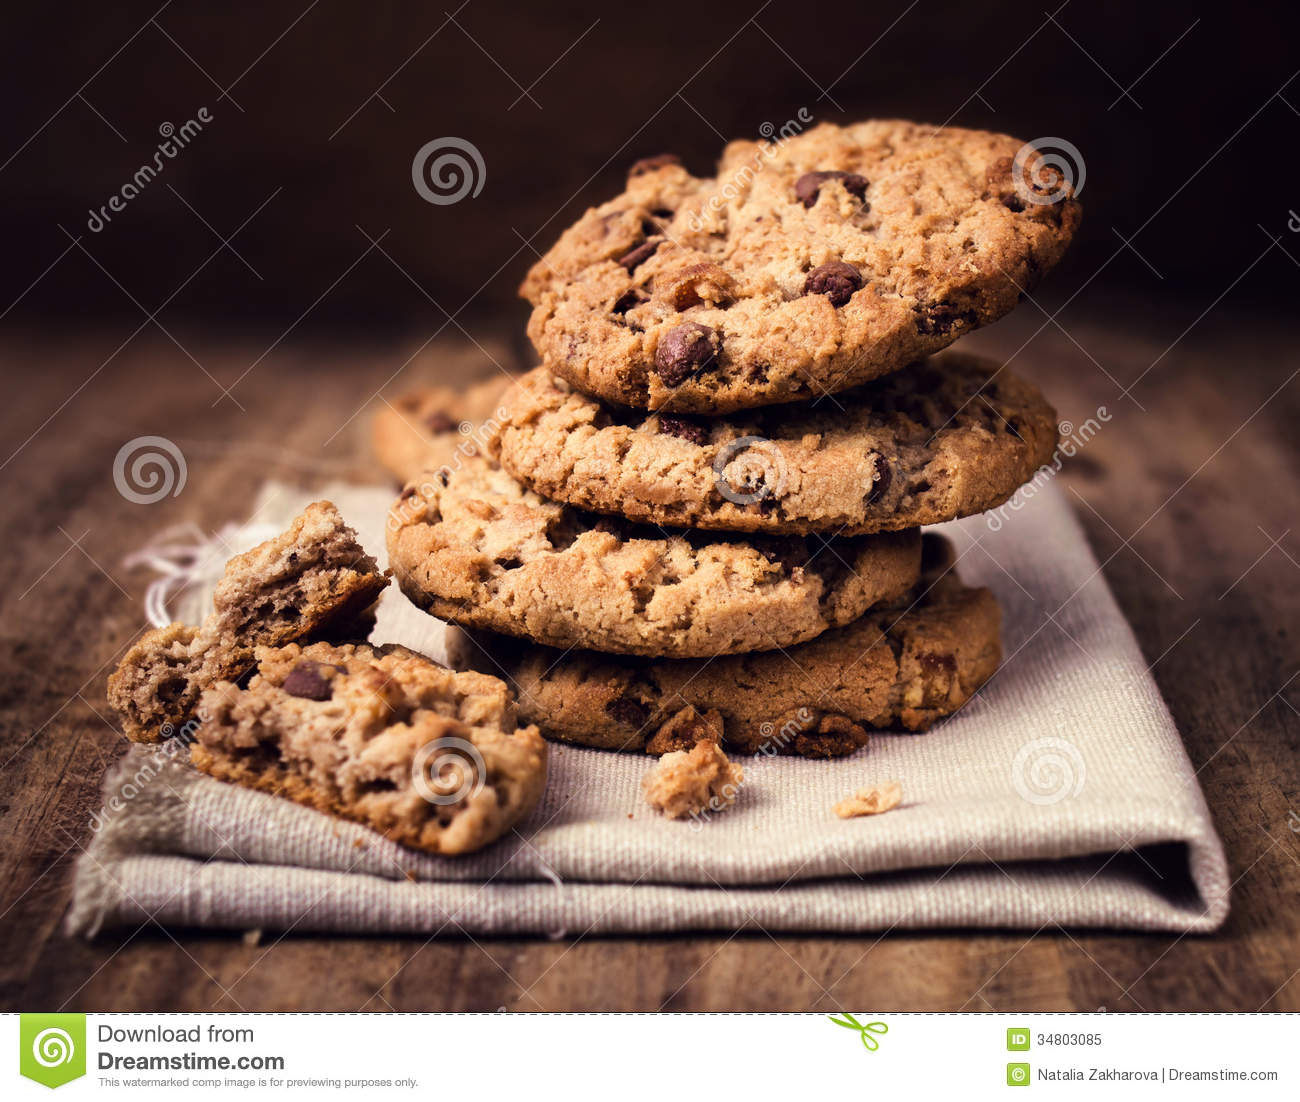 Chocolate chip cookies on linen napkin on wooden table. Stacked